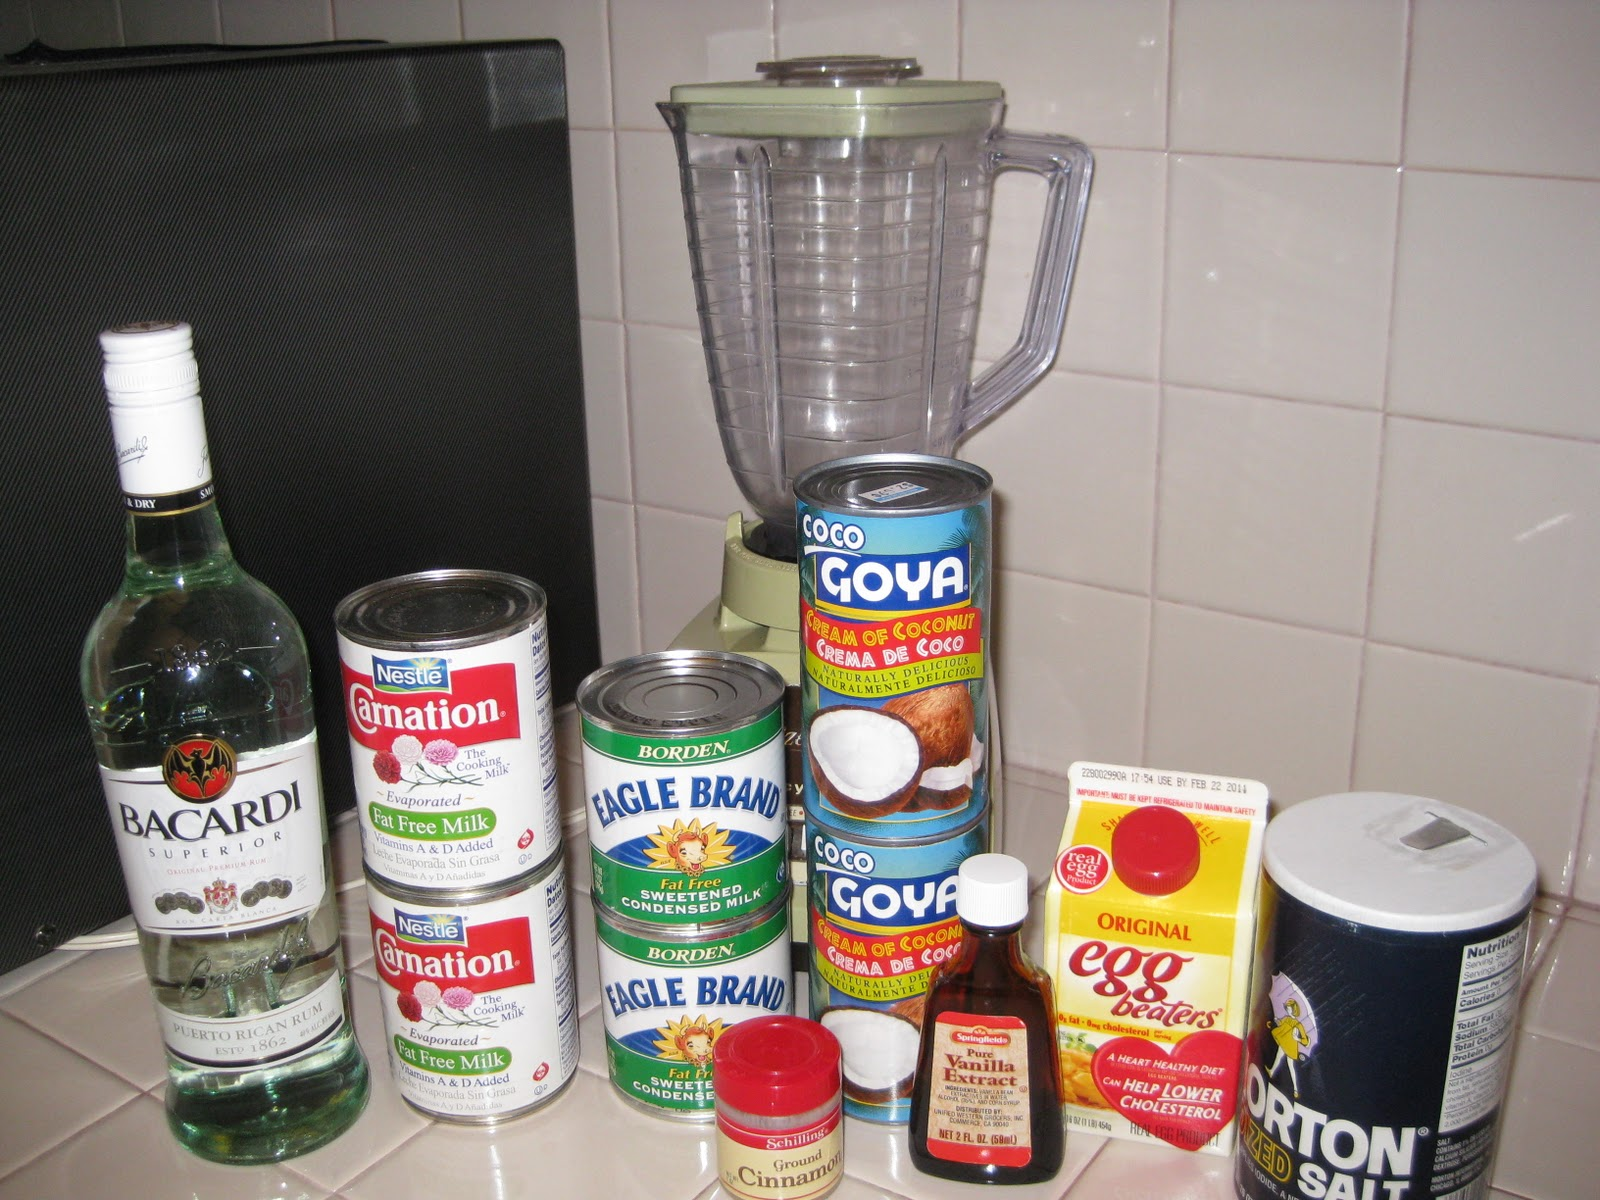 Puerto Rico Is The Place: How To Make Coquito (Eggnog): The